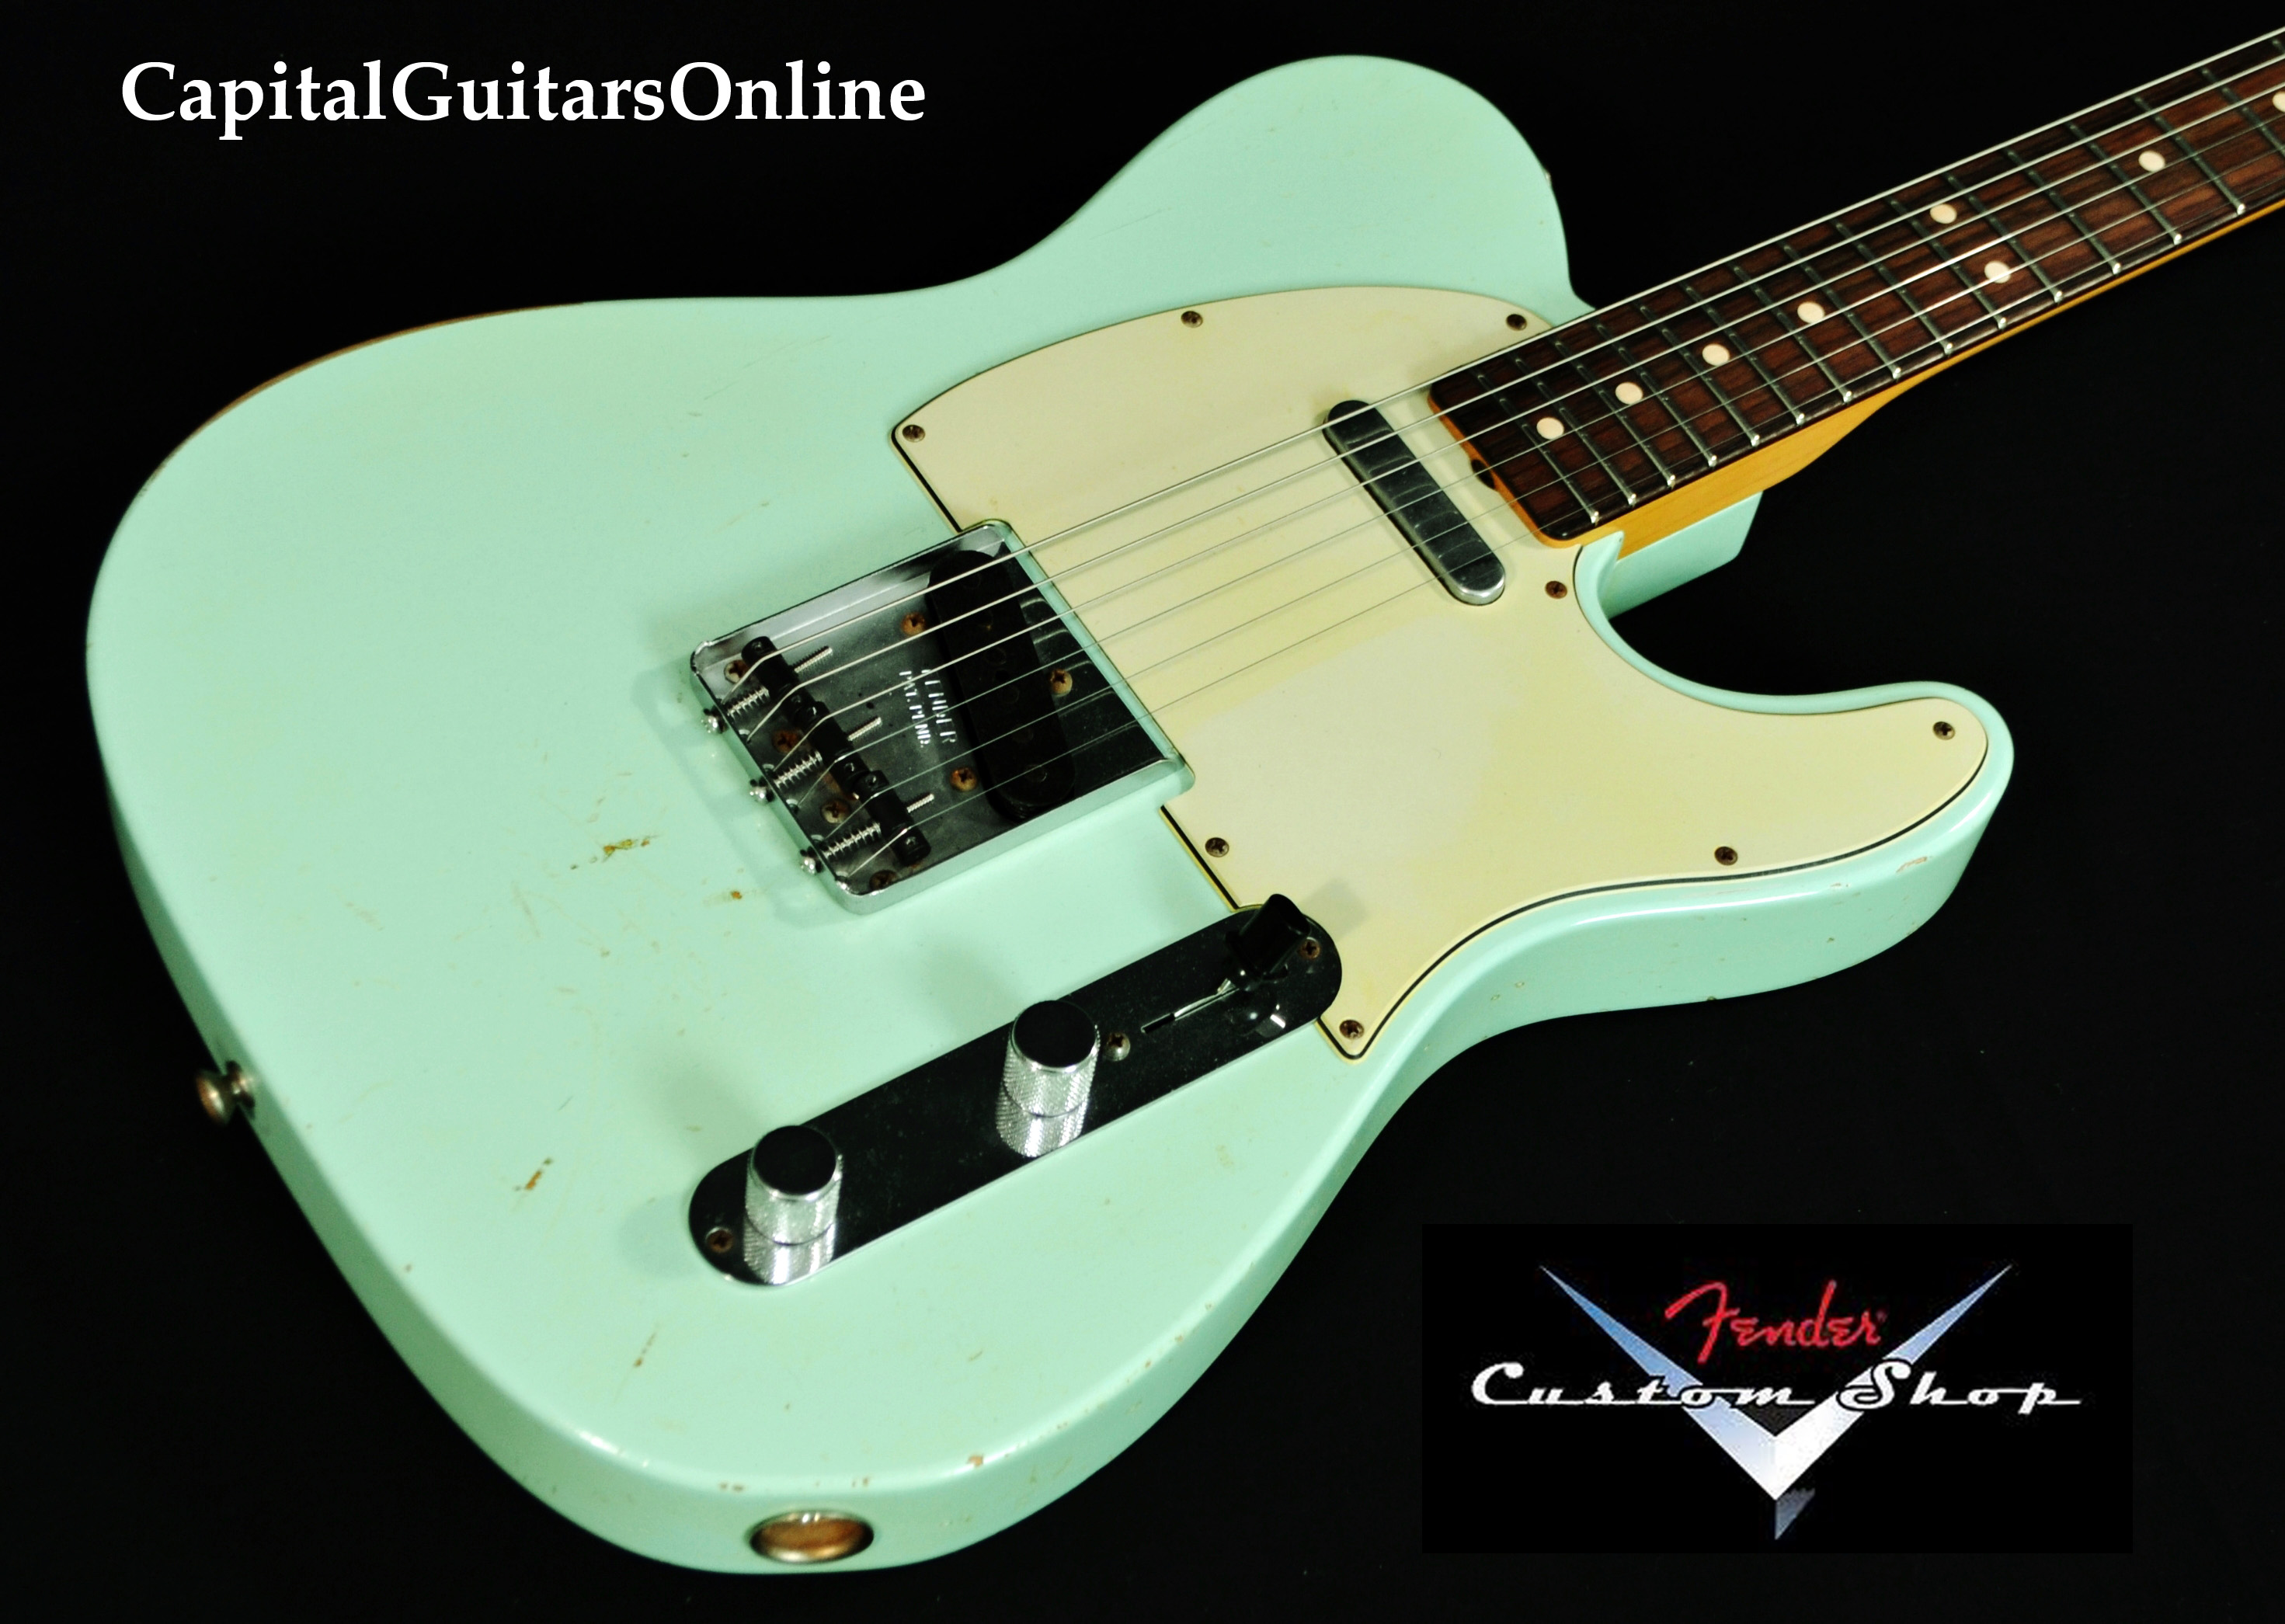 Fender Telecaster Wiring Diagram At Bridge Circuit And Tbx 2012 Cs 63 Relic Faded Surf Green